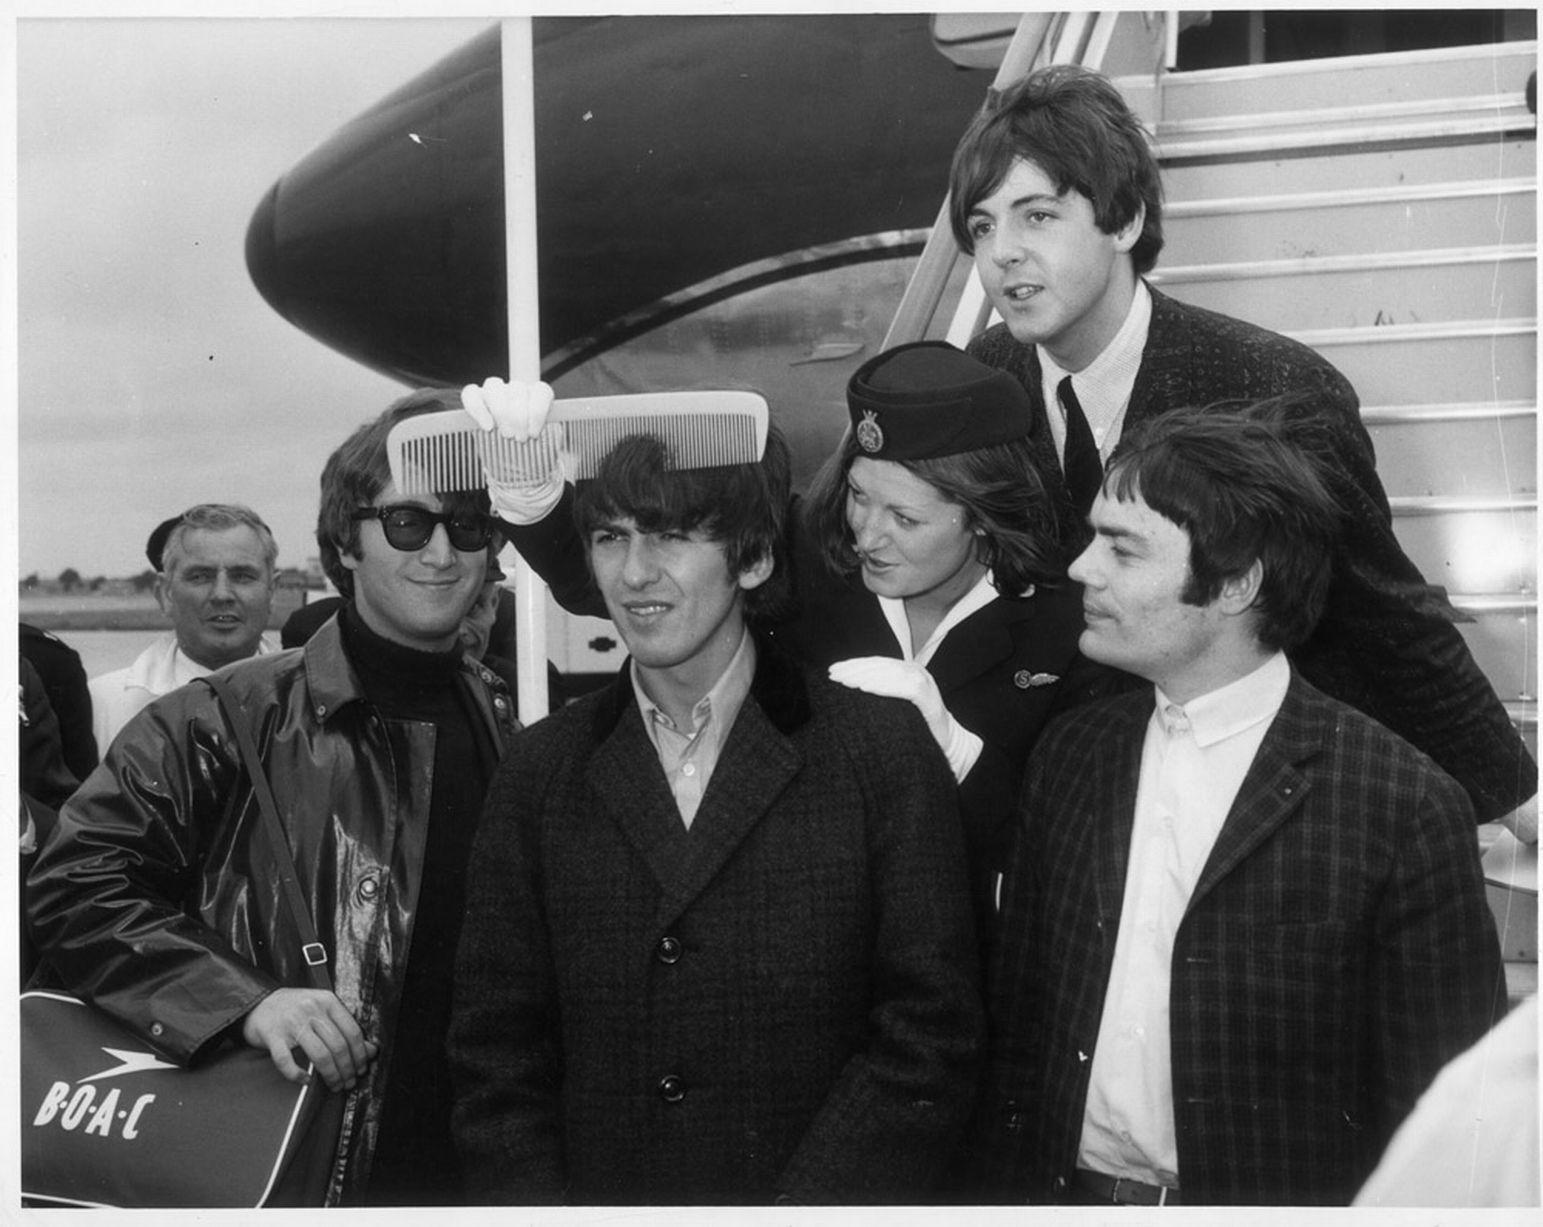 Beatles weirdest pics: 50 most bizarre photos of John Lennon, Paul McCartney, Ringo Starr and George Harrison from the archives - Mirror Online